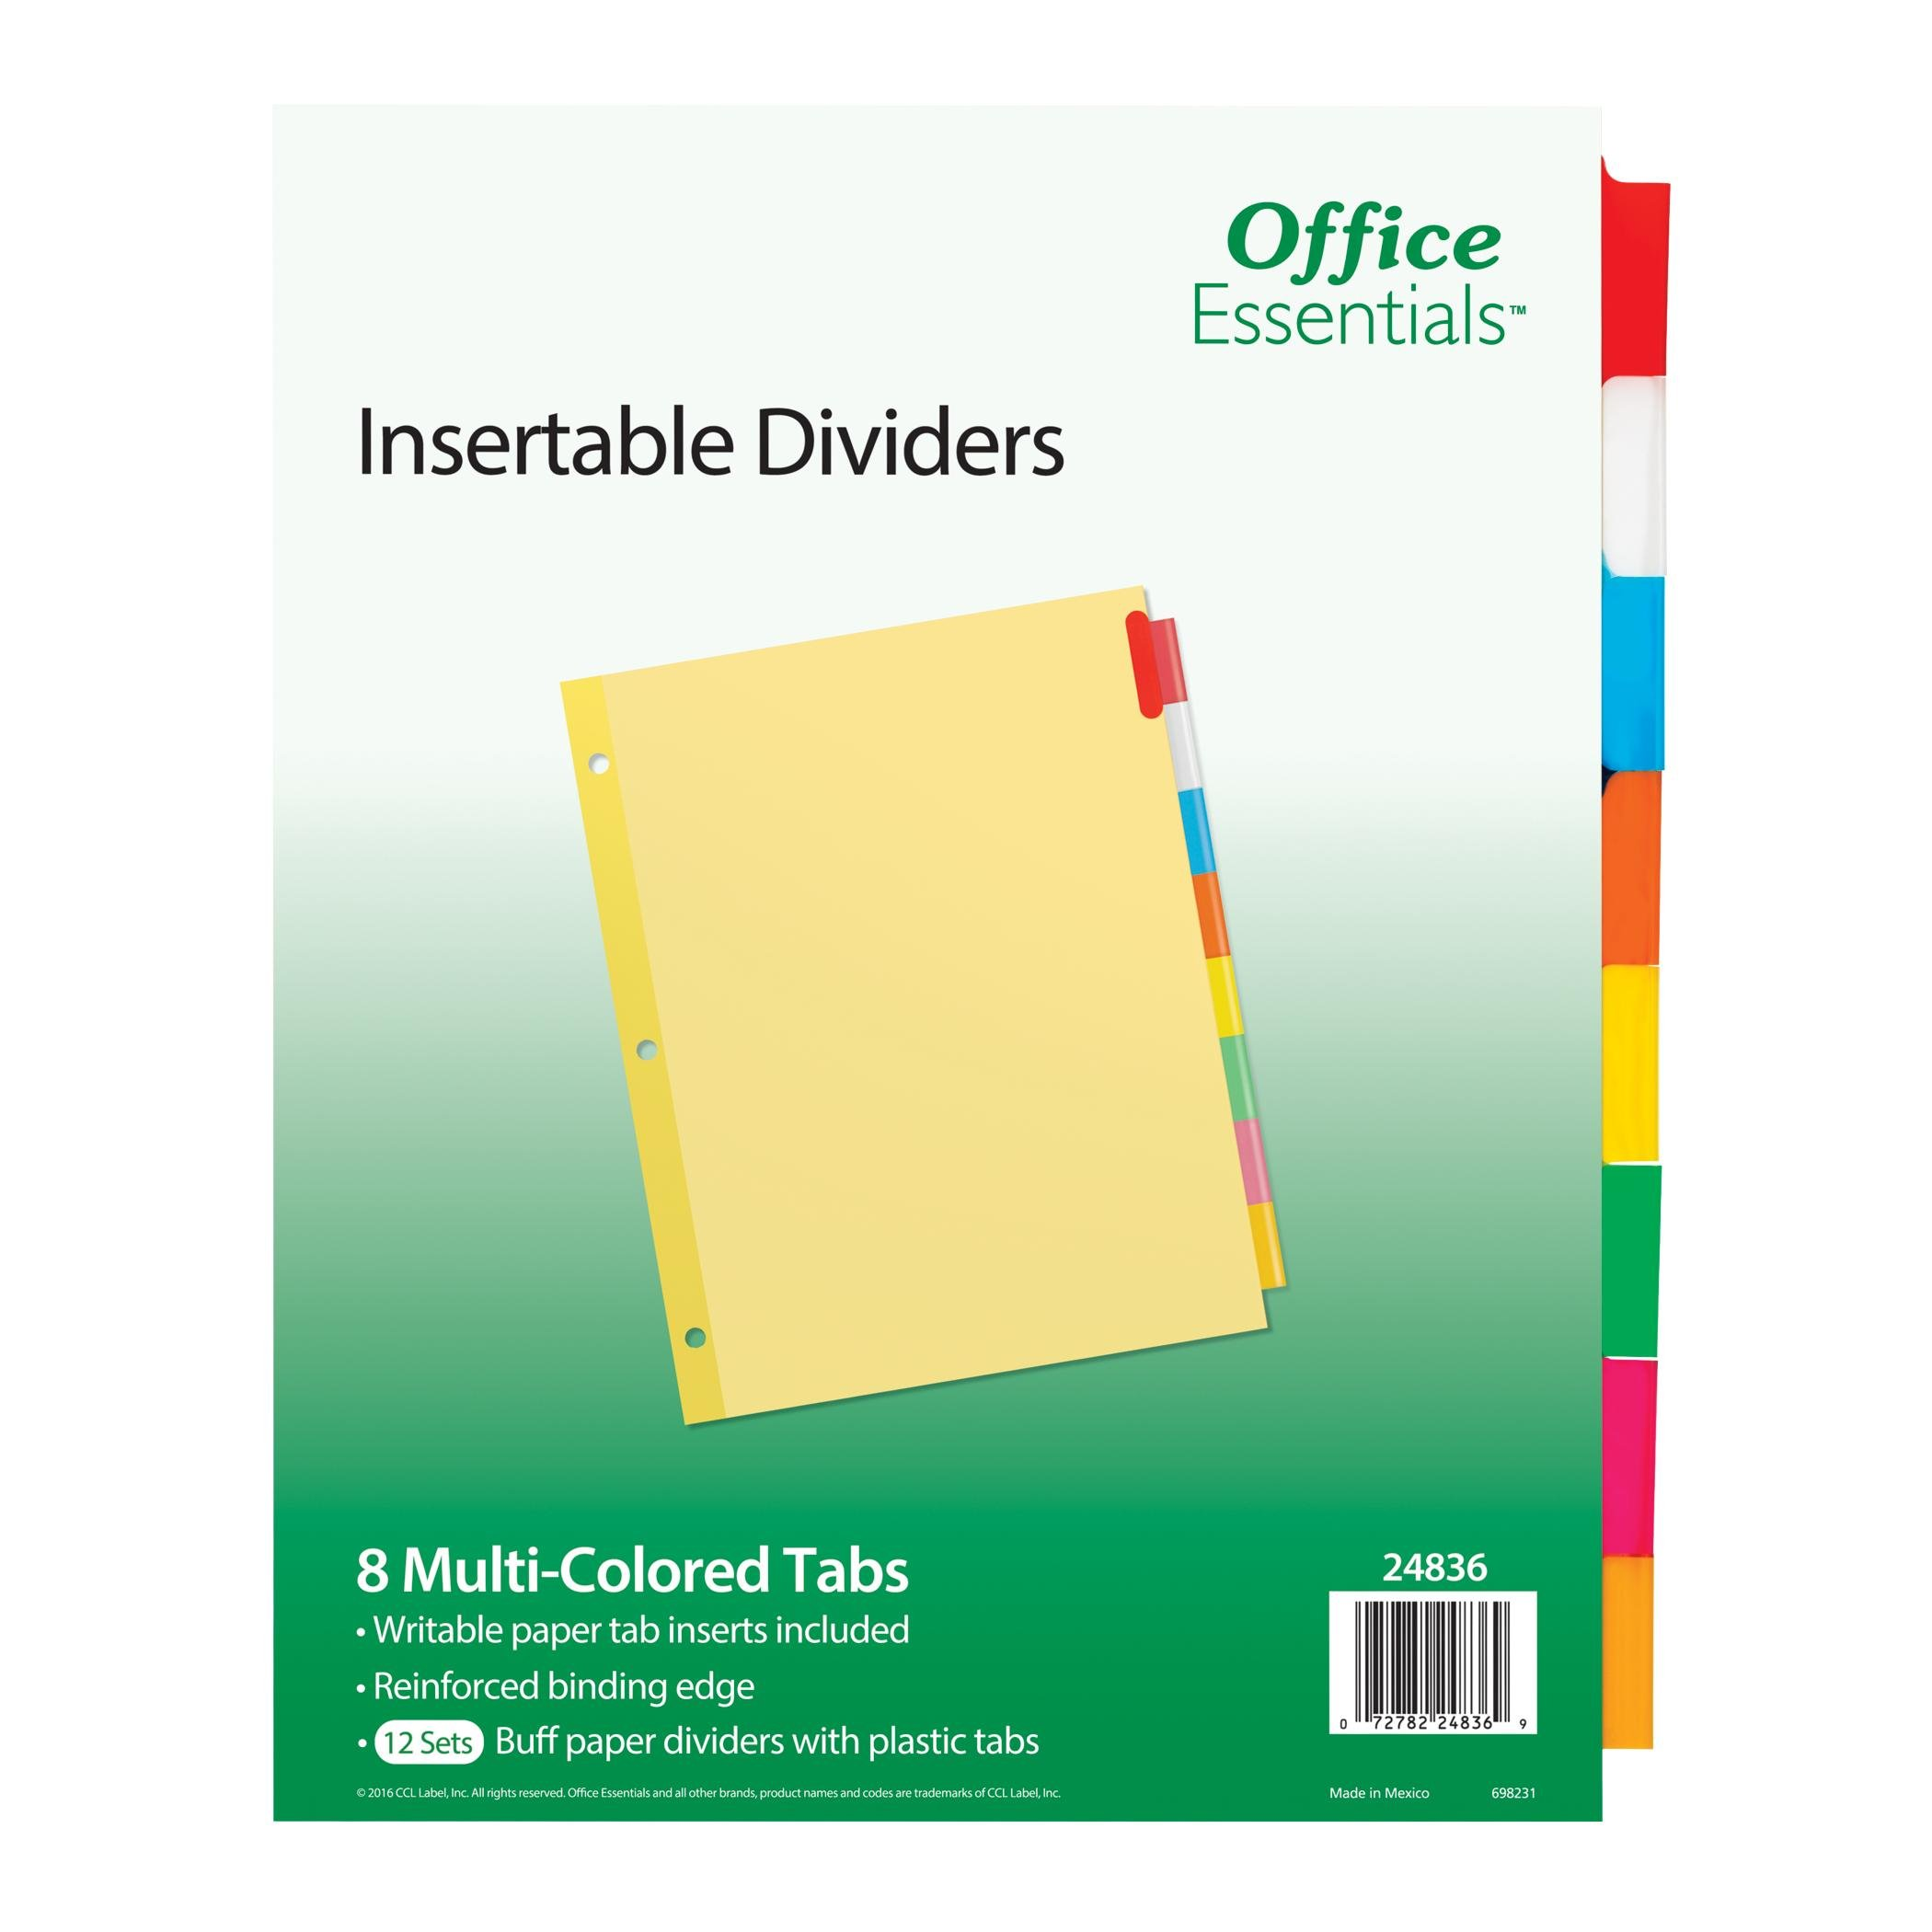 Office Essentials Insertable Dividers, 8-1/2'' x 11'', 8 Tab, Multicolor Tab, Buff Paper, 12 Pack (24836)